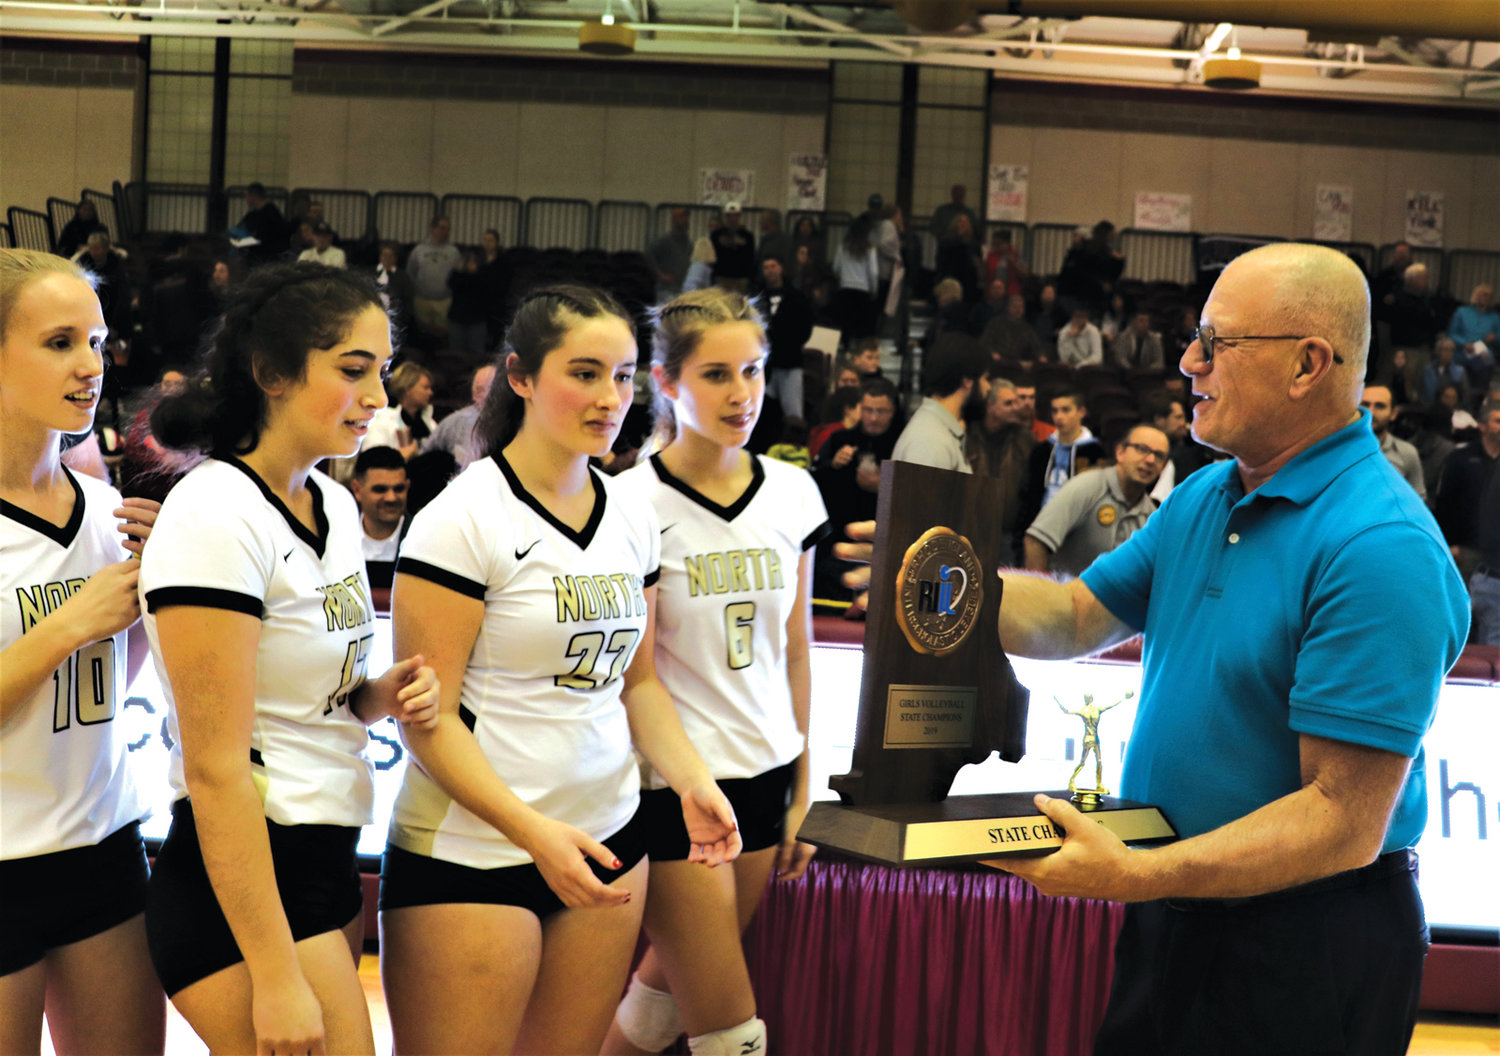 LEAGUE WINNERS: Ray DeAngelis presents the North Kingstown girls volleyball team with the state championship plaque.